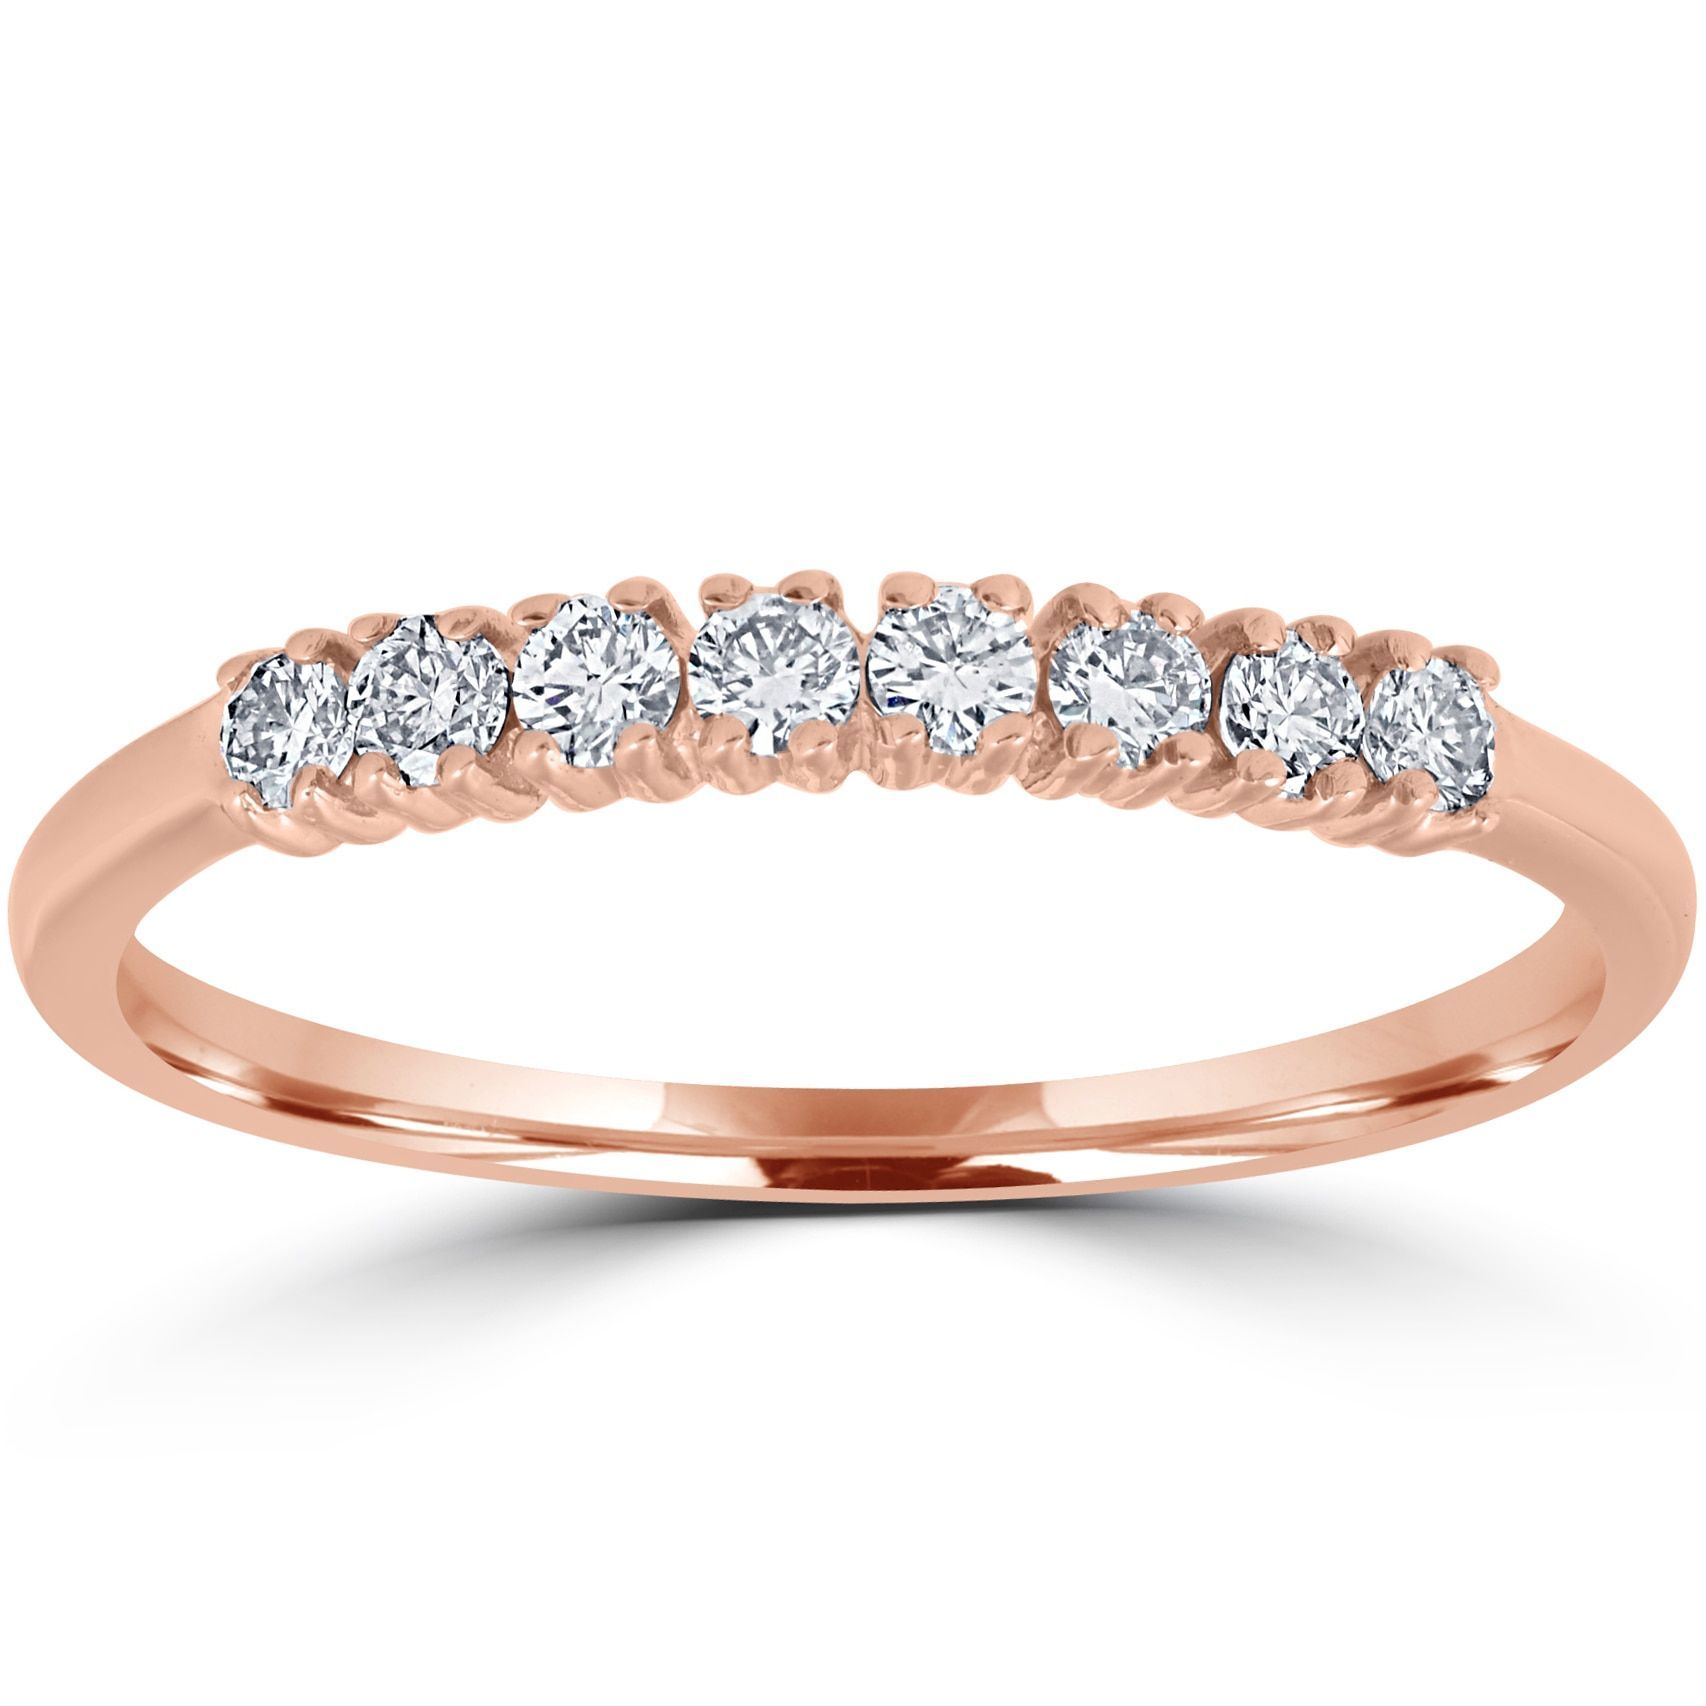 Bliss 14K Rose Gold 15 ct TDW Diamond Ring Womens Stackable Wedding